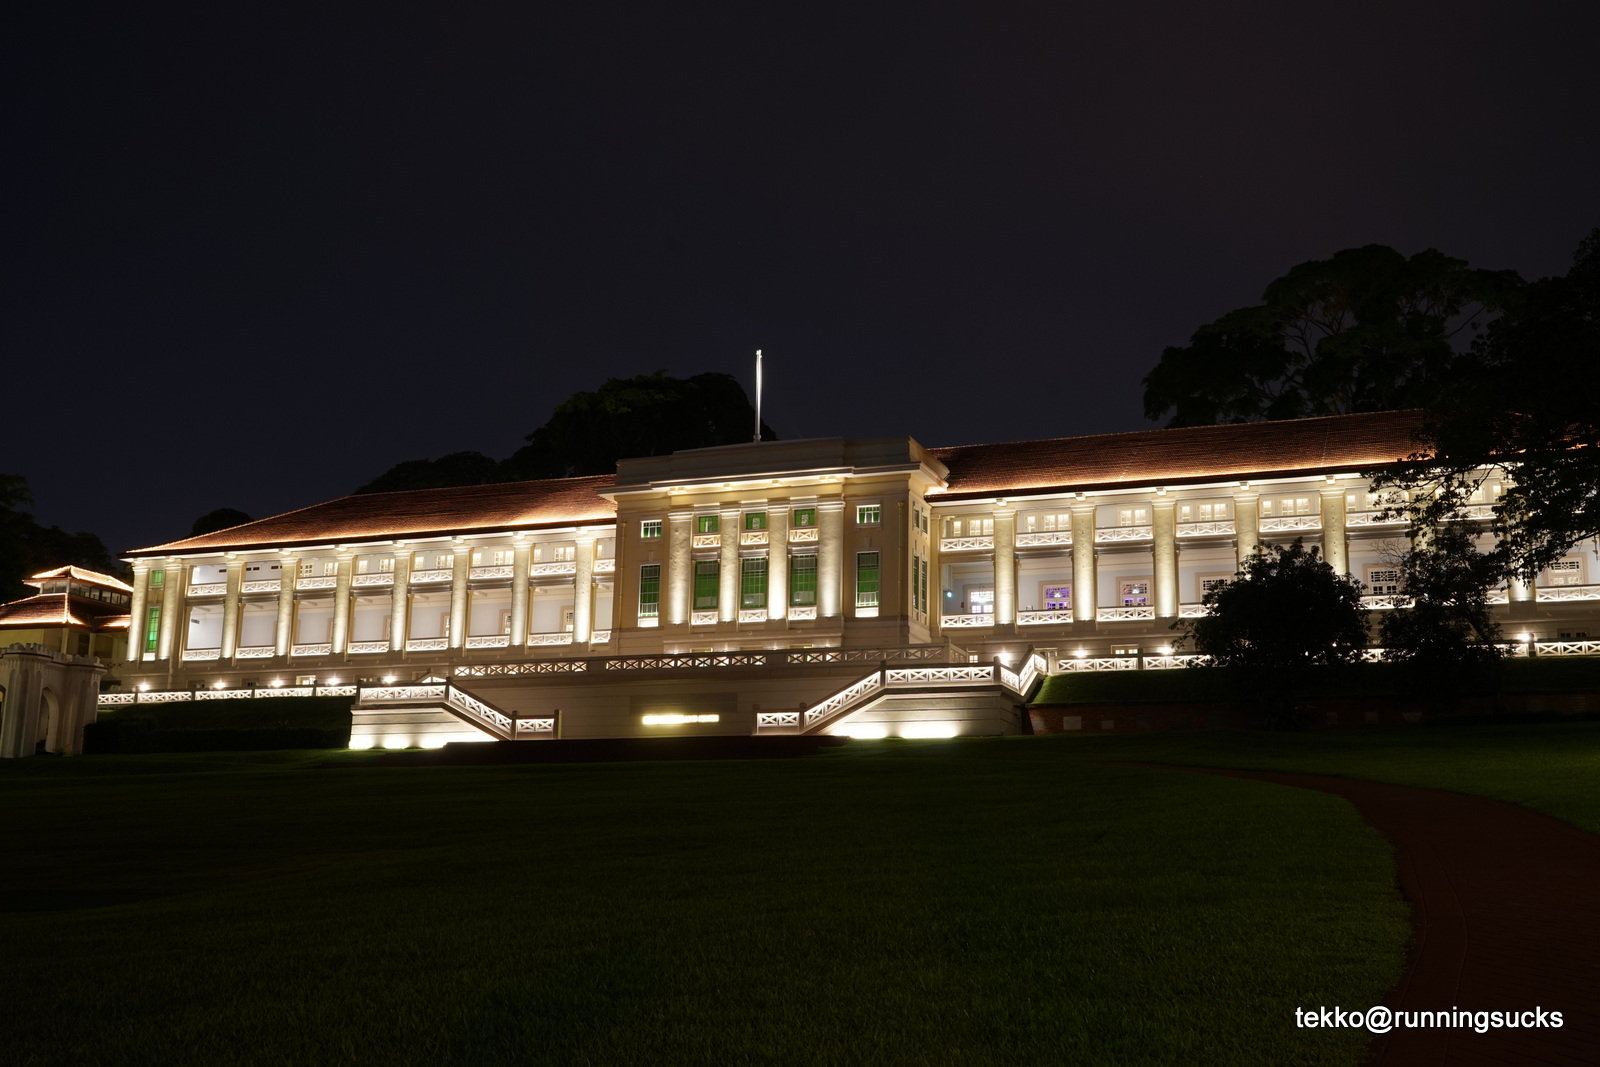 Fort canning park runeatgossip for Appart hotel 03290